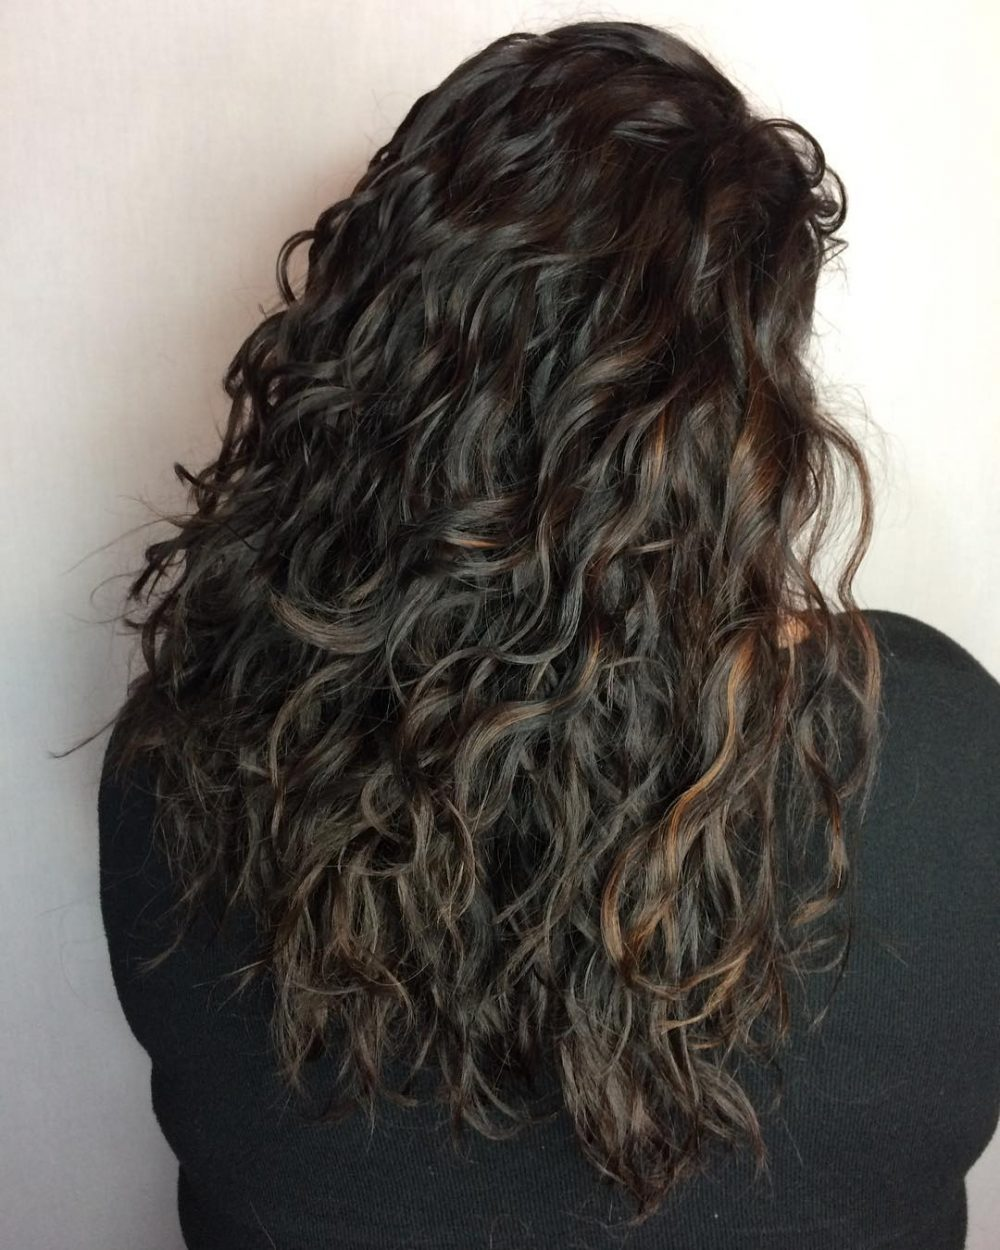 All Natural Hair Gel For Curly Hair